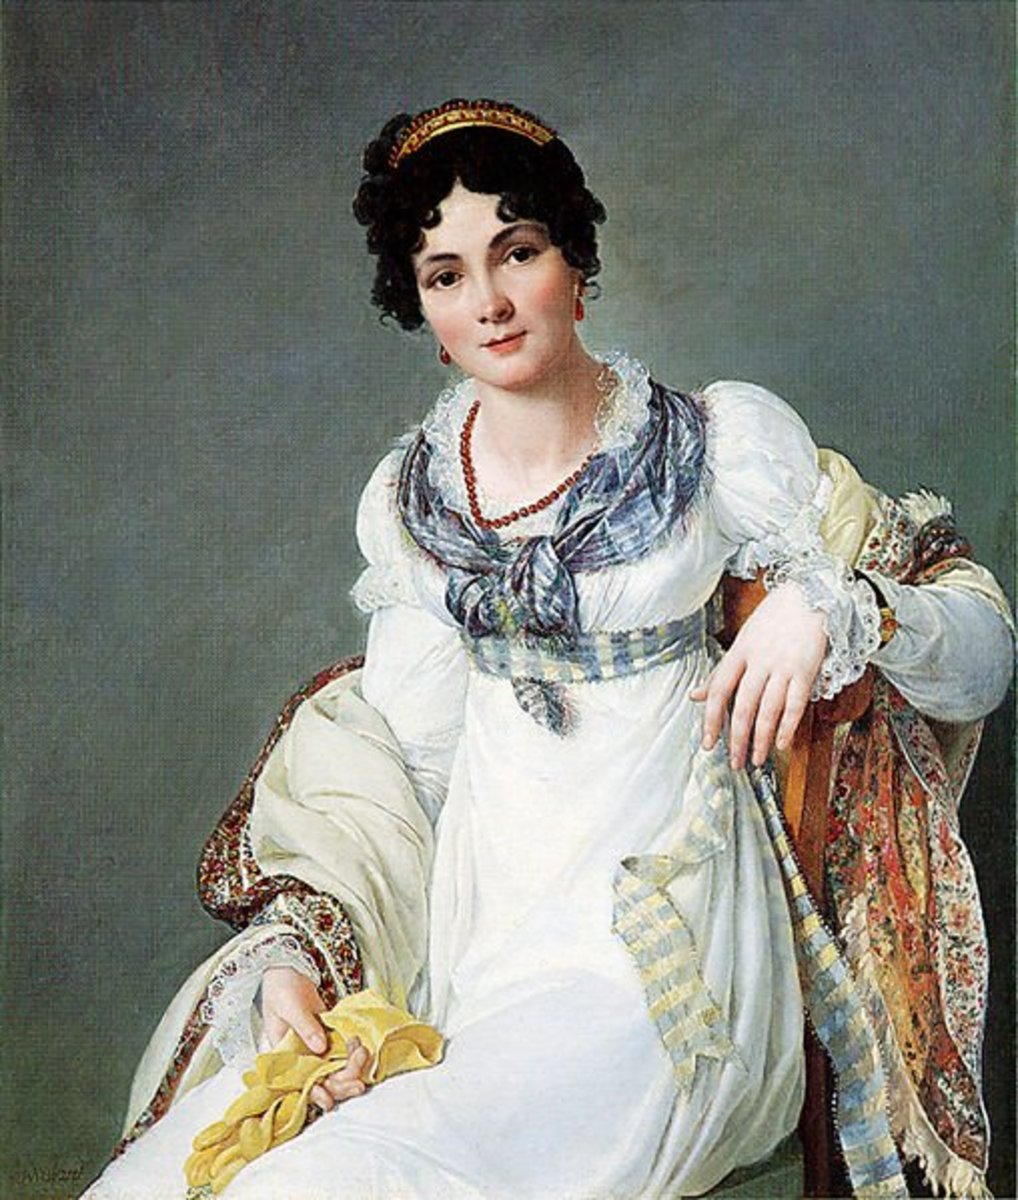 An 1810 portrait of a lady wearing her hair in an exceedingly neoclassical style!